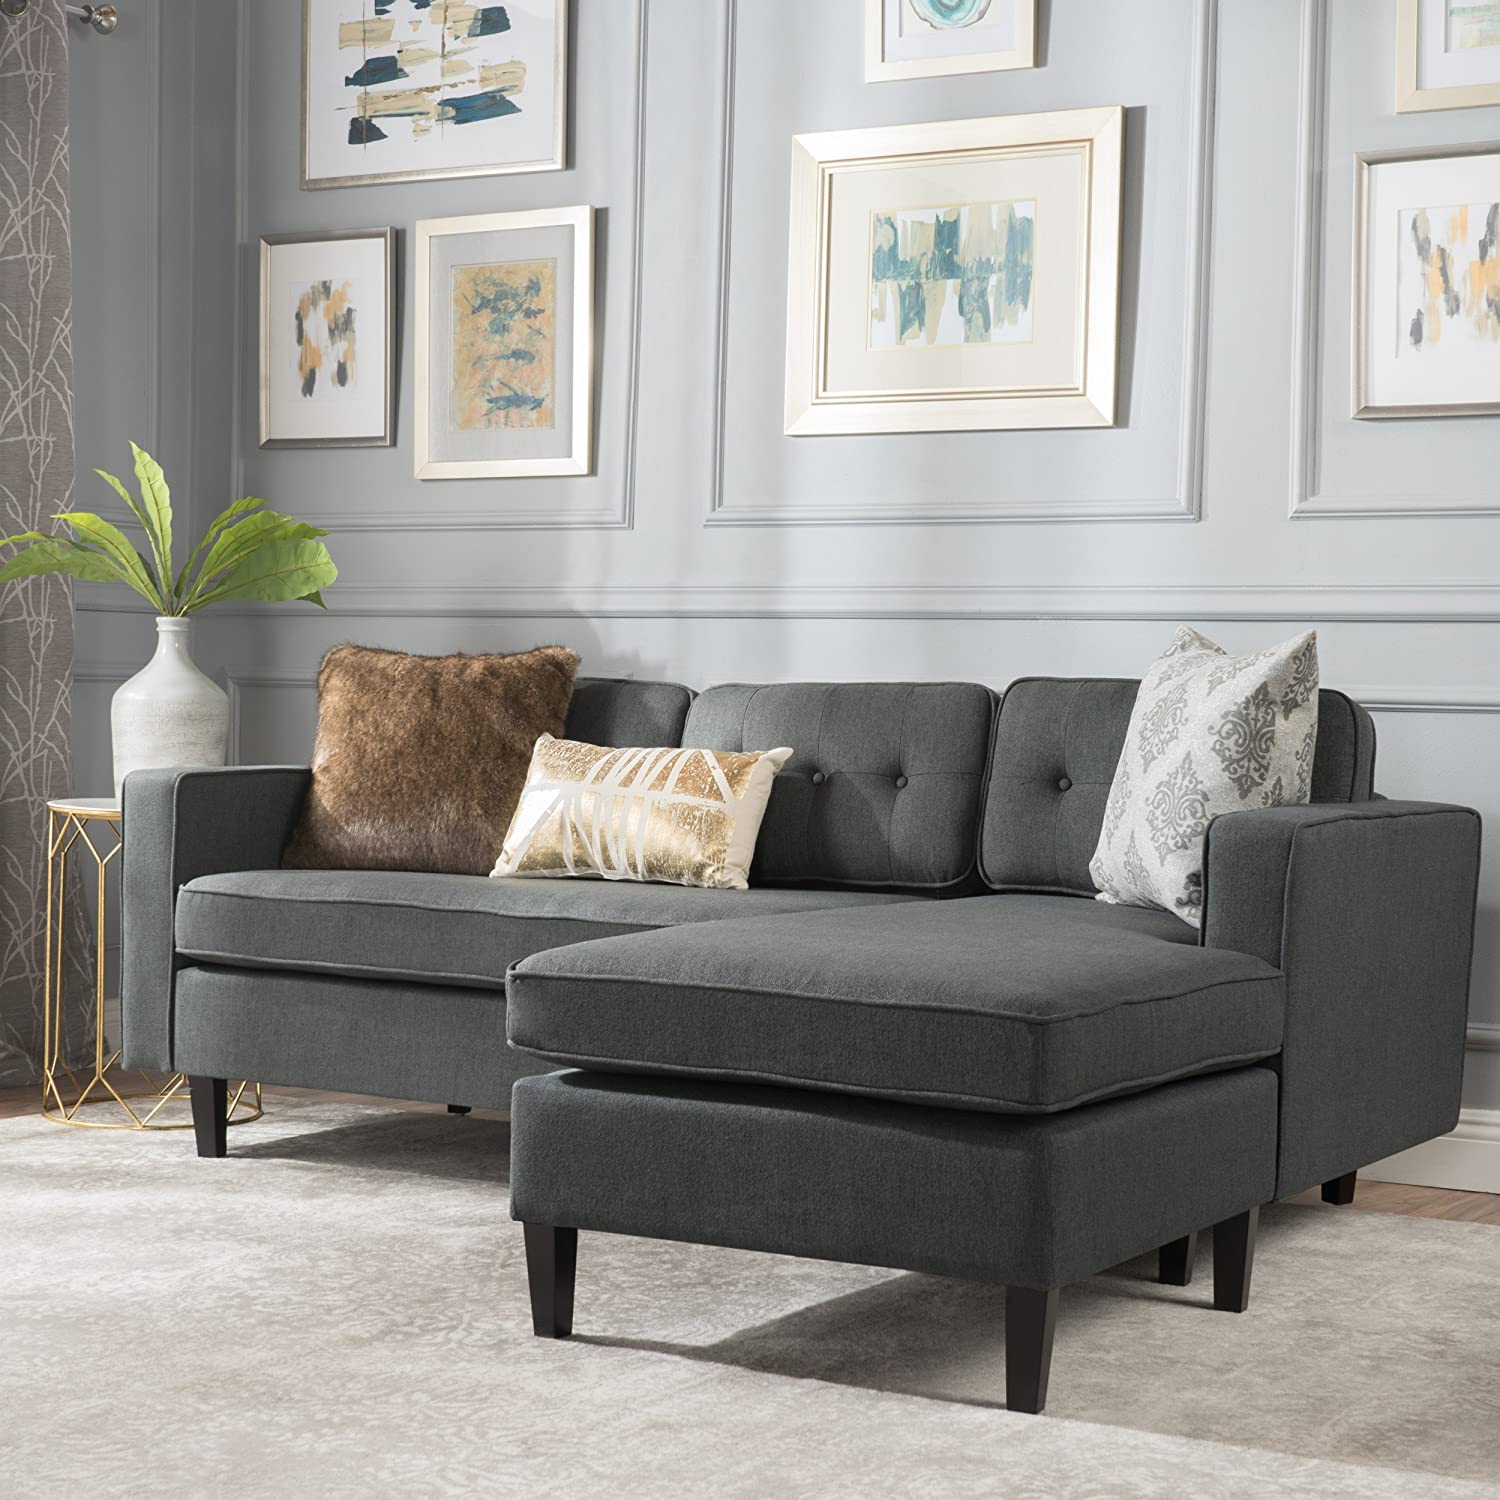 Pleasing Christopher Knight Home Windsor Living Room 2 Piece Chaise Sectional Sofa Scandinavian Mid Century Design Dark Grey Fabric Beatyapartments Chair Design Images Beatyapartmentscom